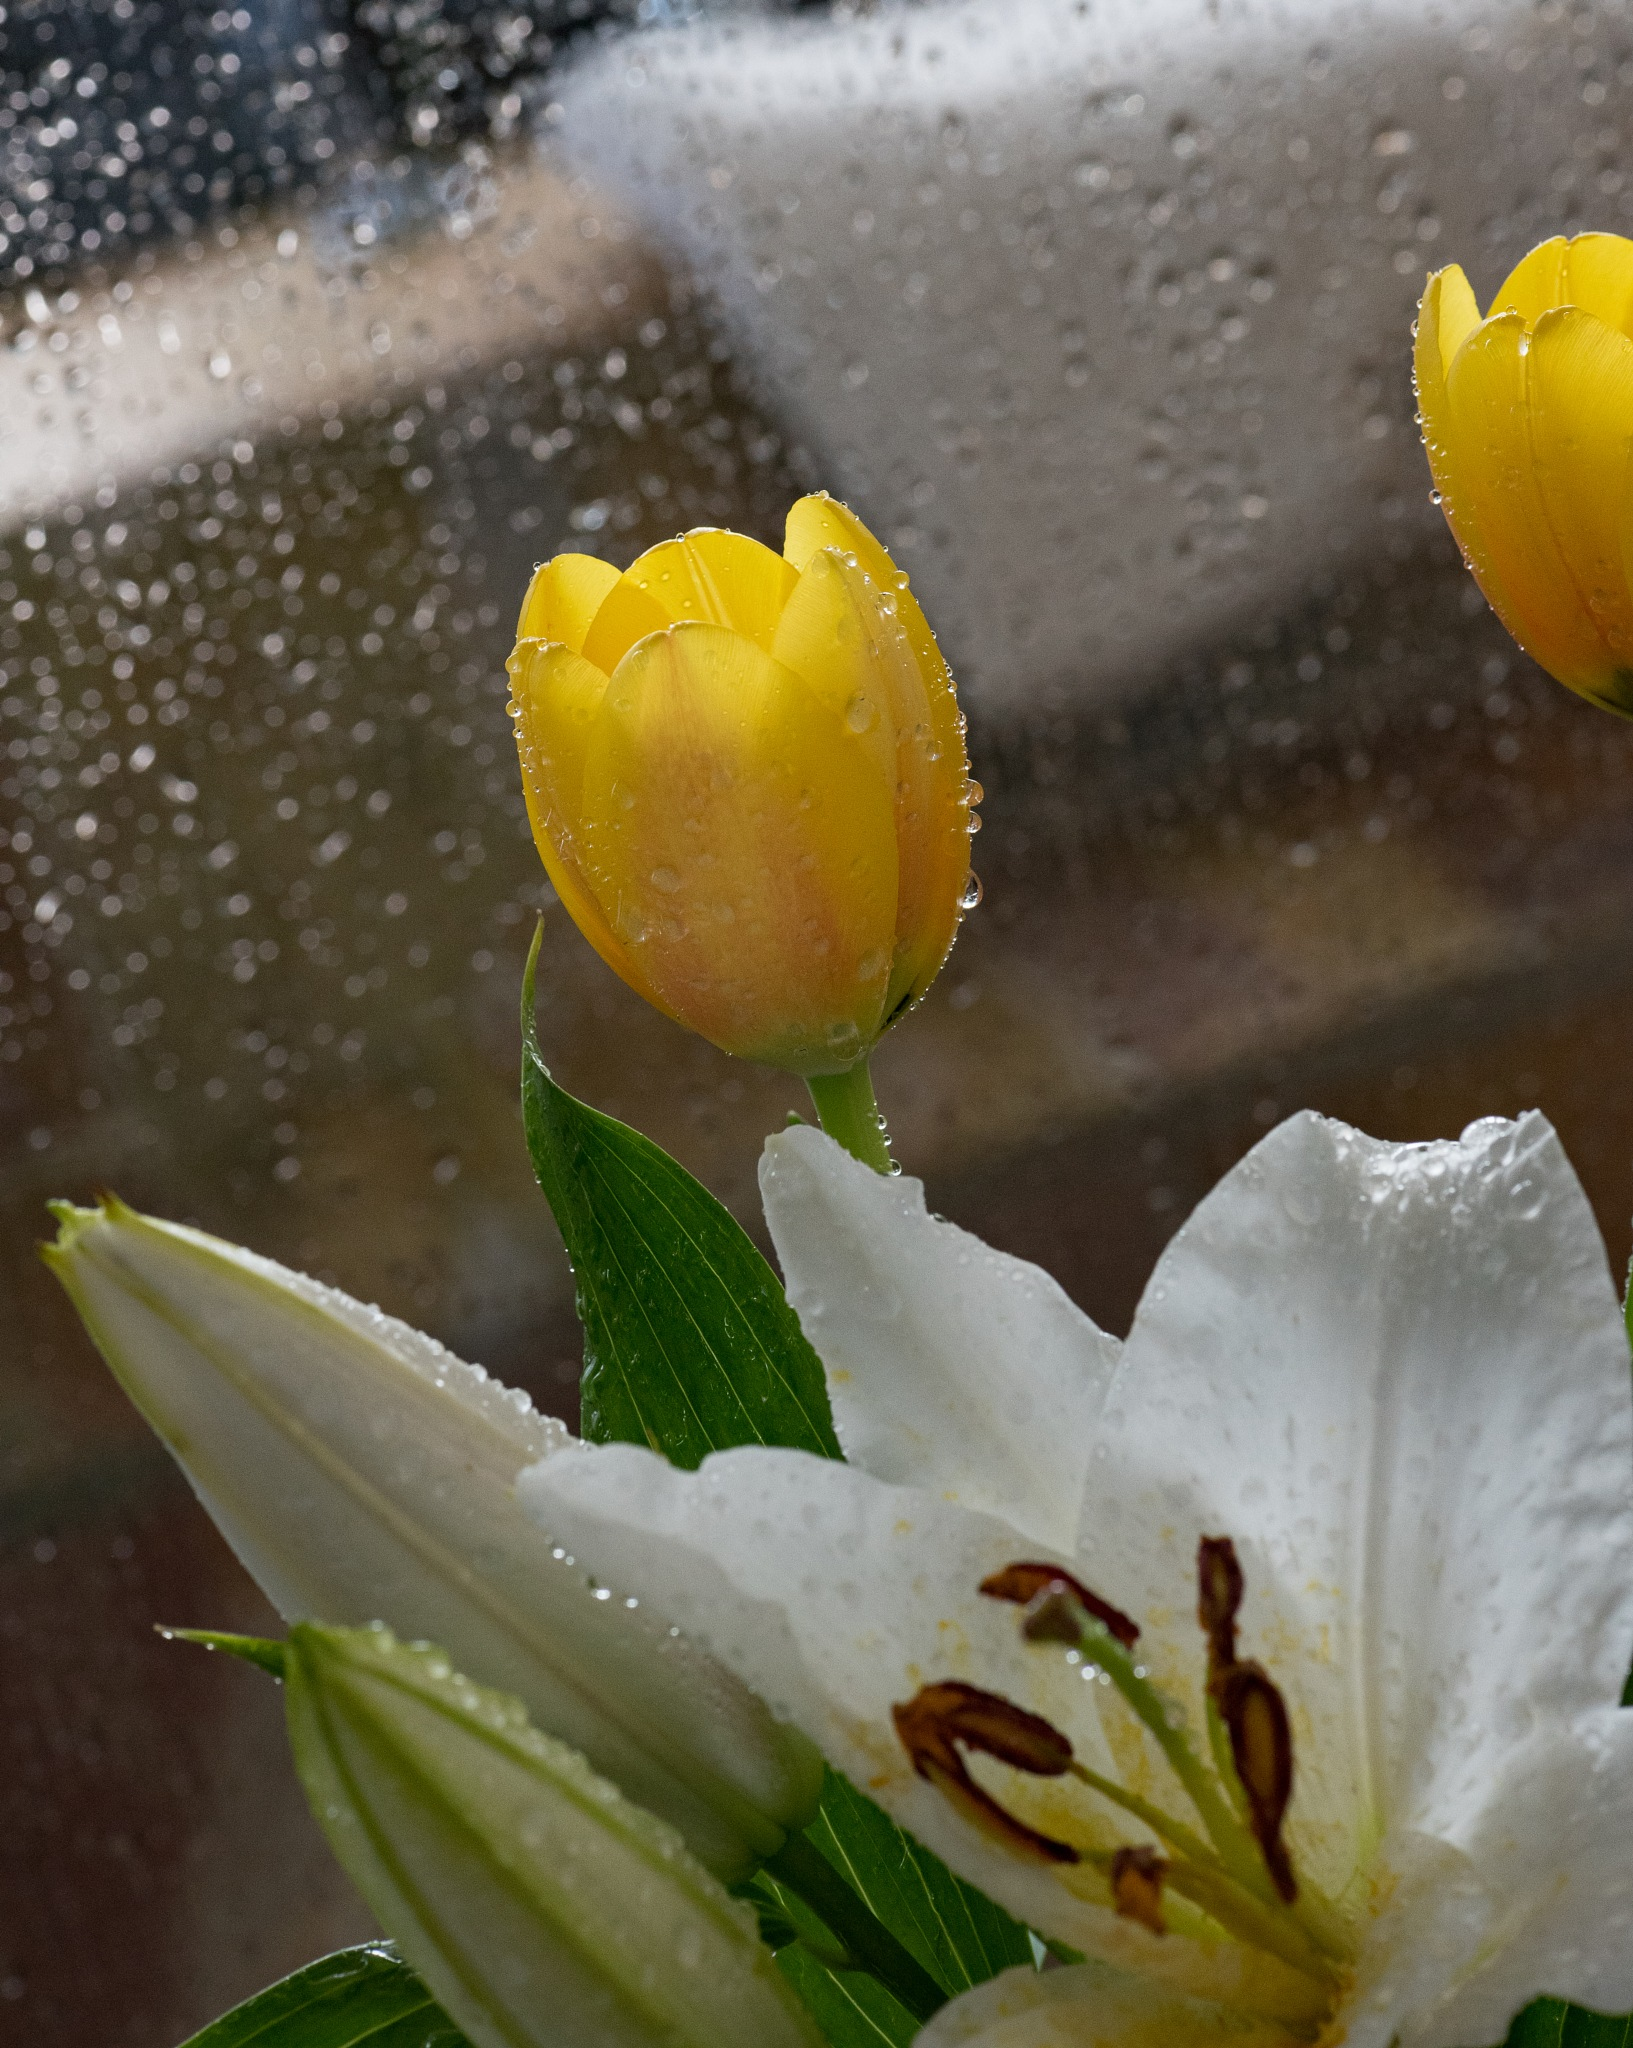 FLOWERS IN THE SHOWER by DrJohnHodgson